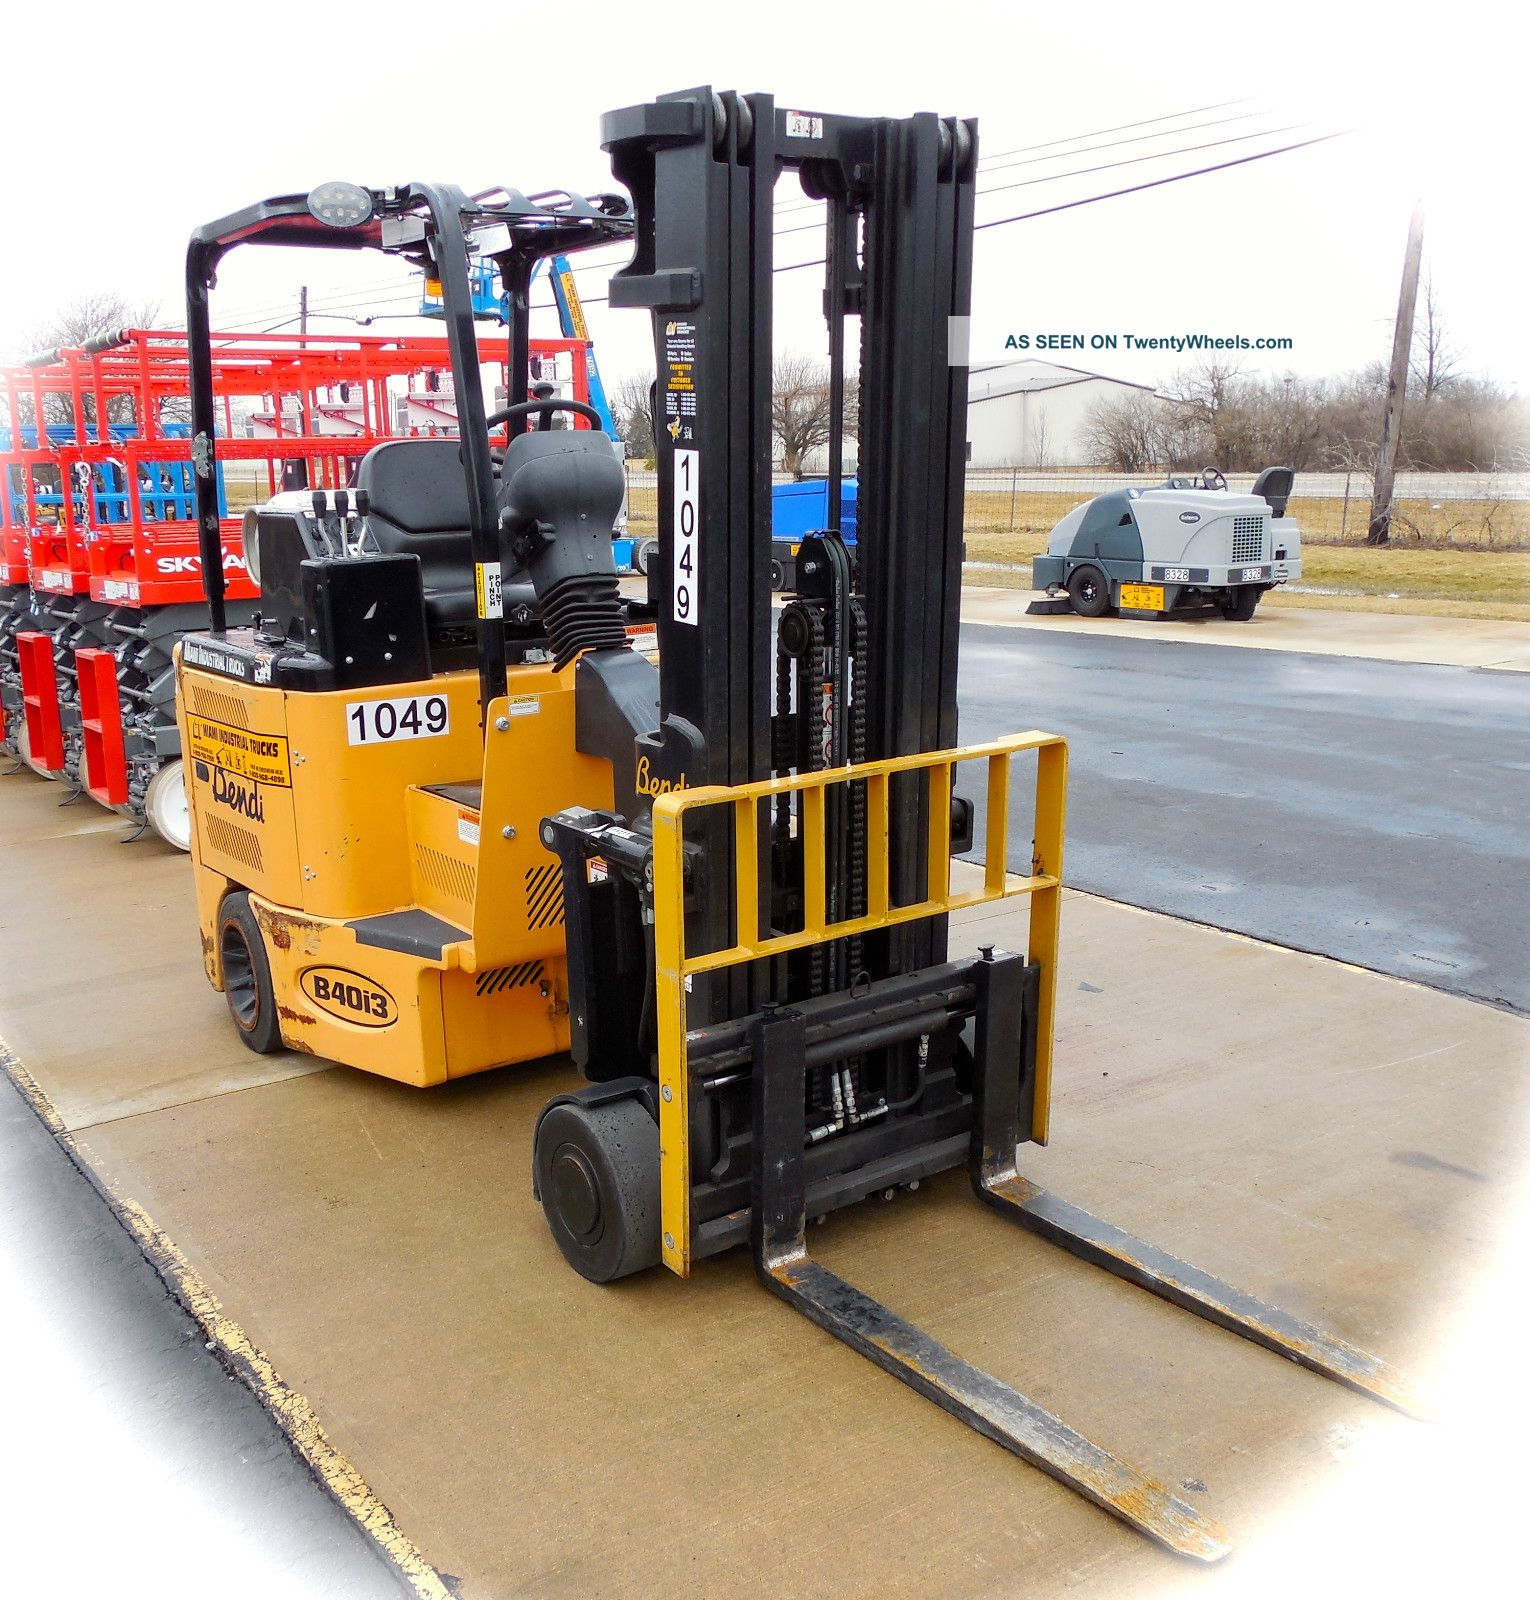 1049 bendi articulated lp powered forklift Motorized forklift